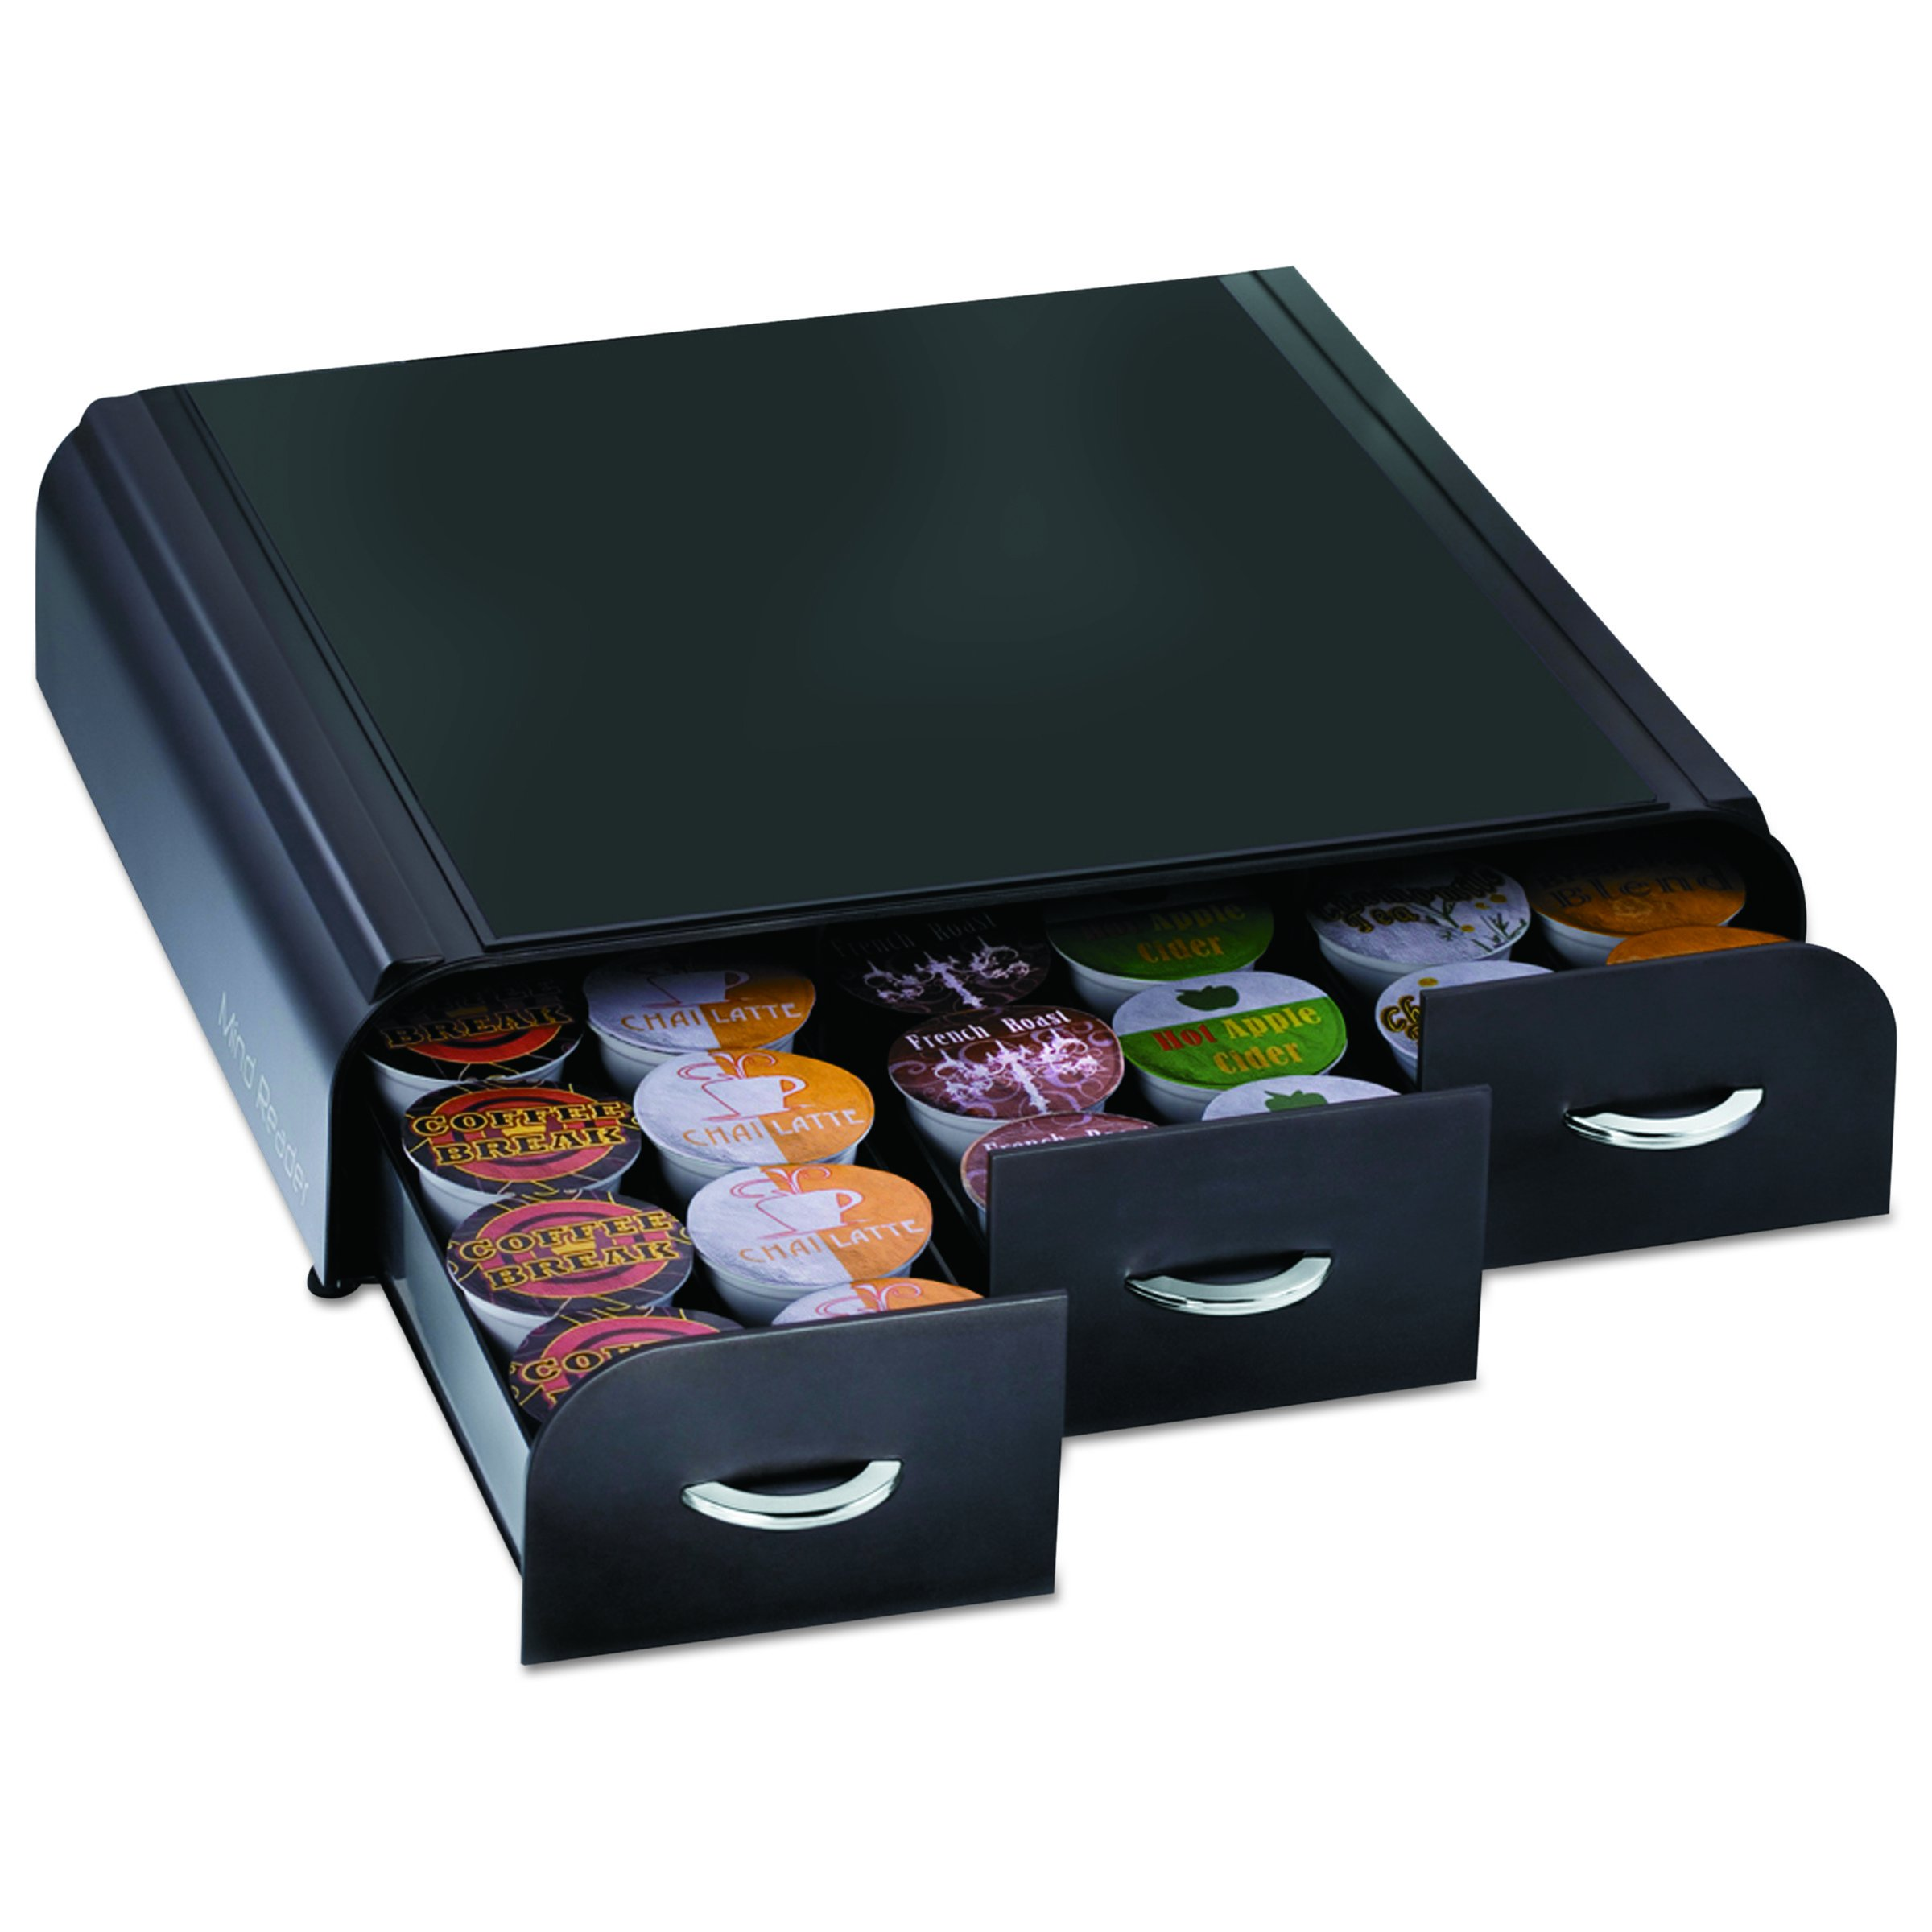 Mind Reader 'Anchor' Triple Drawer K-Cup Dolce Gusto, CBTL, Verismo Single Serve Coffee Pod Holder, Black by Mind Reader (Image #3)